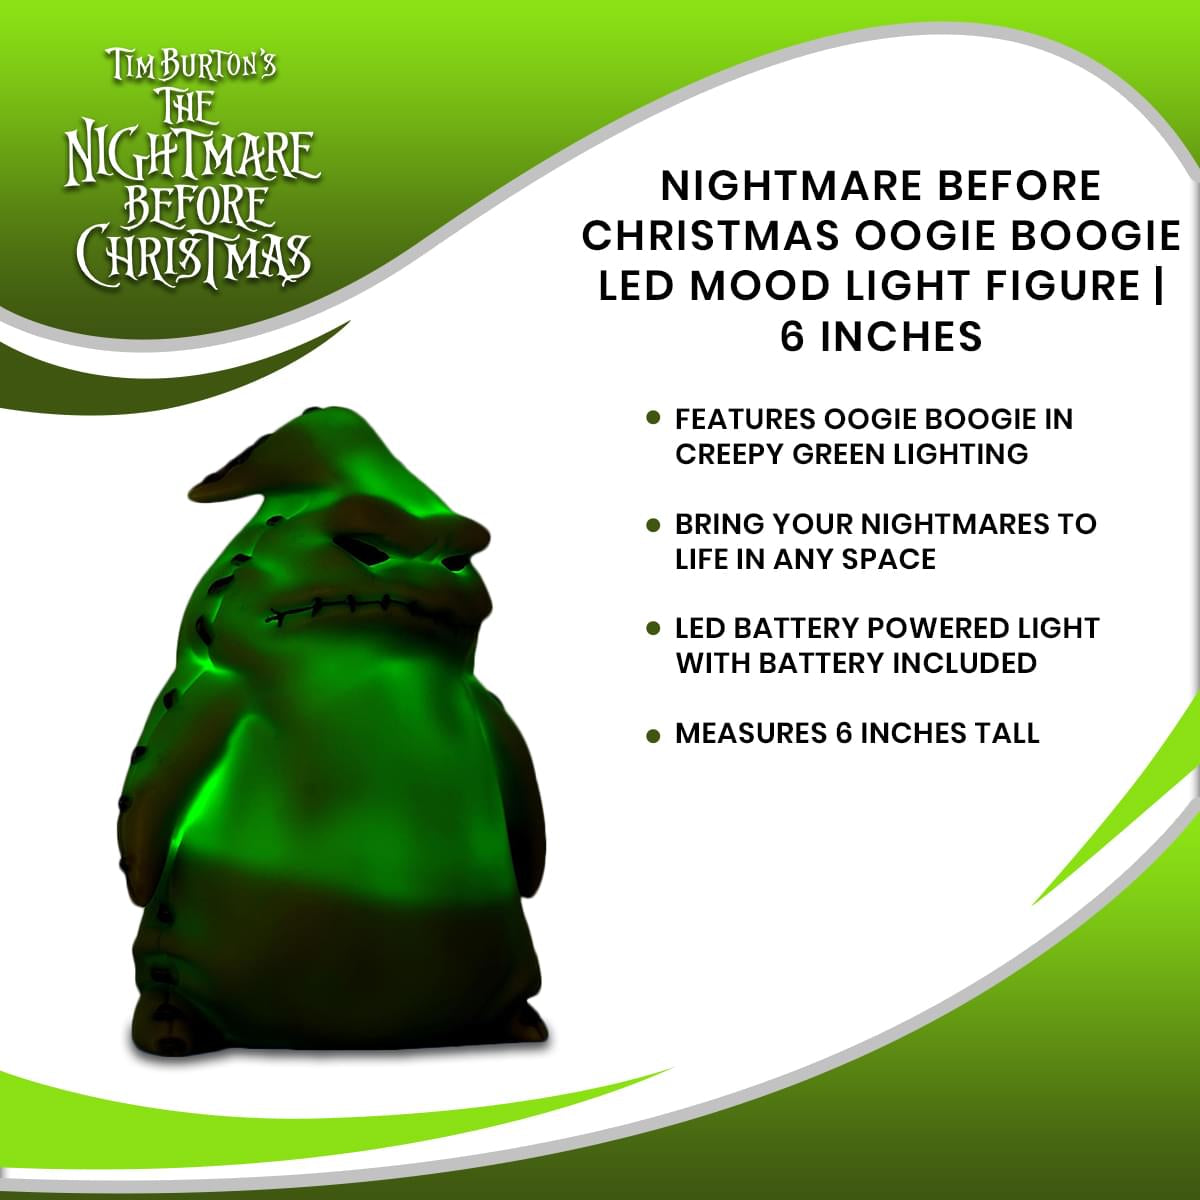 Nightmare Before Christmas Oogie Boogie LED Mood Light Figure | 6 Inches